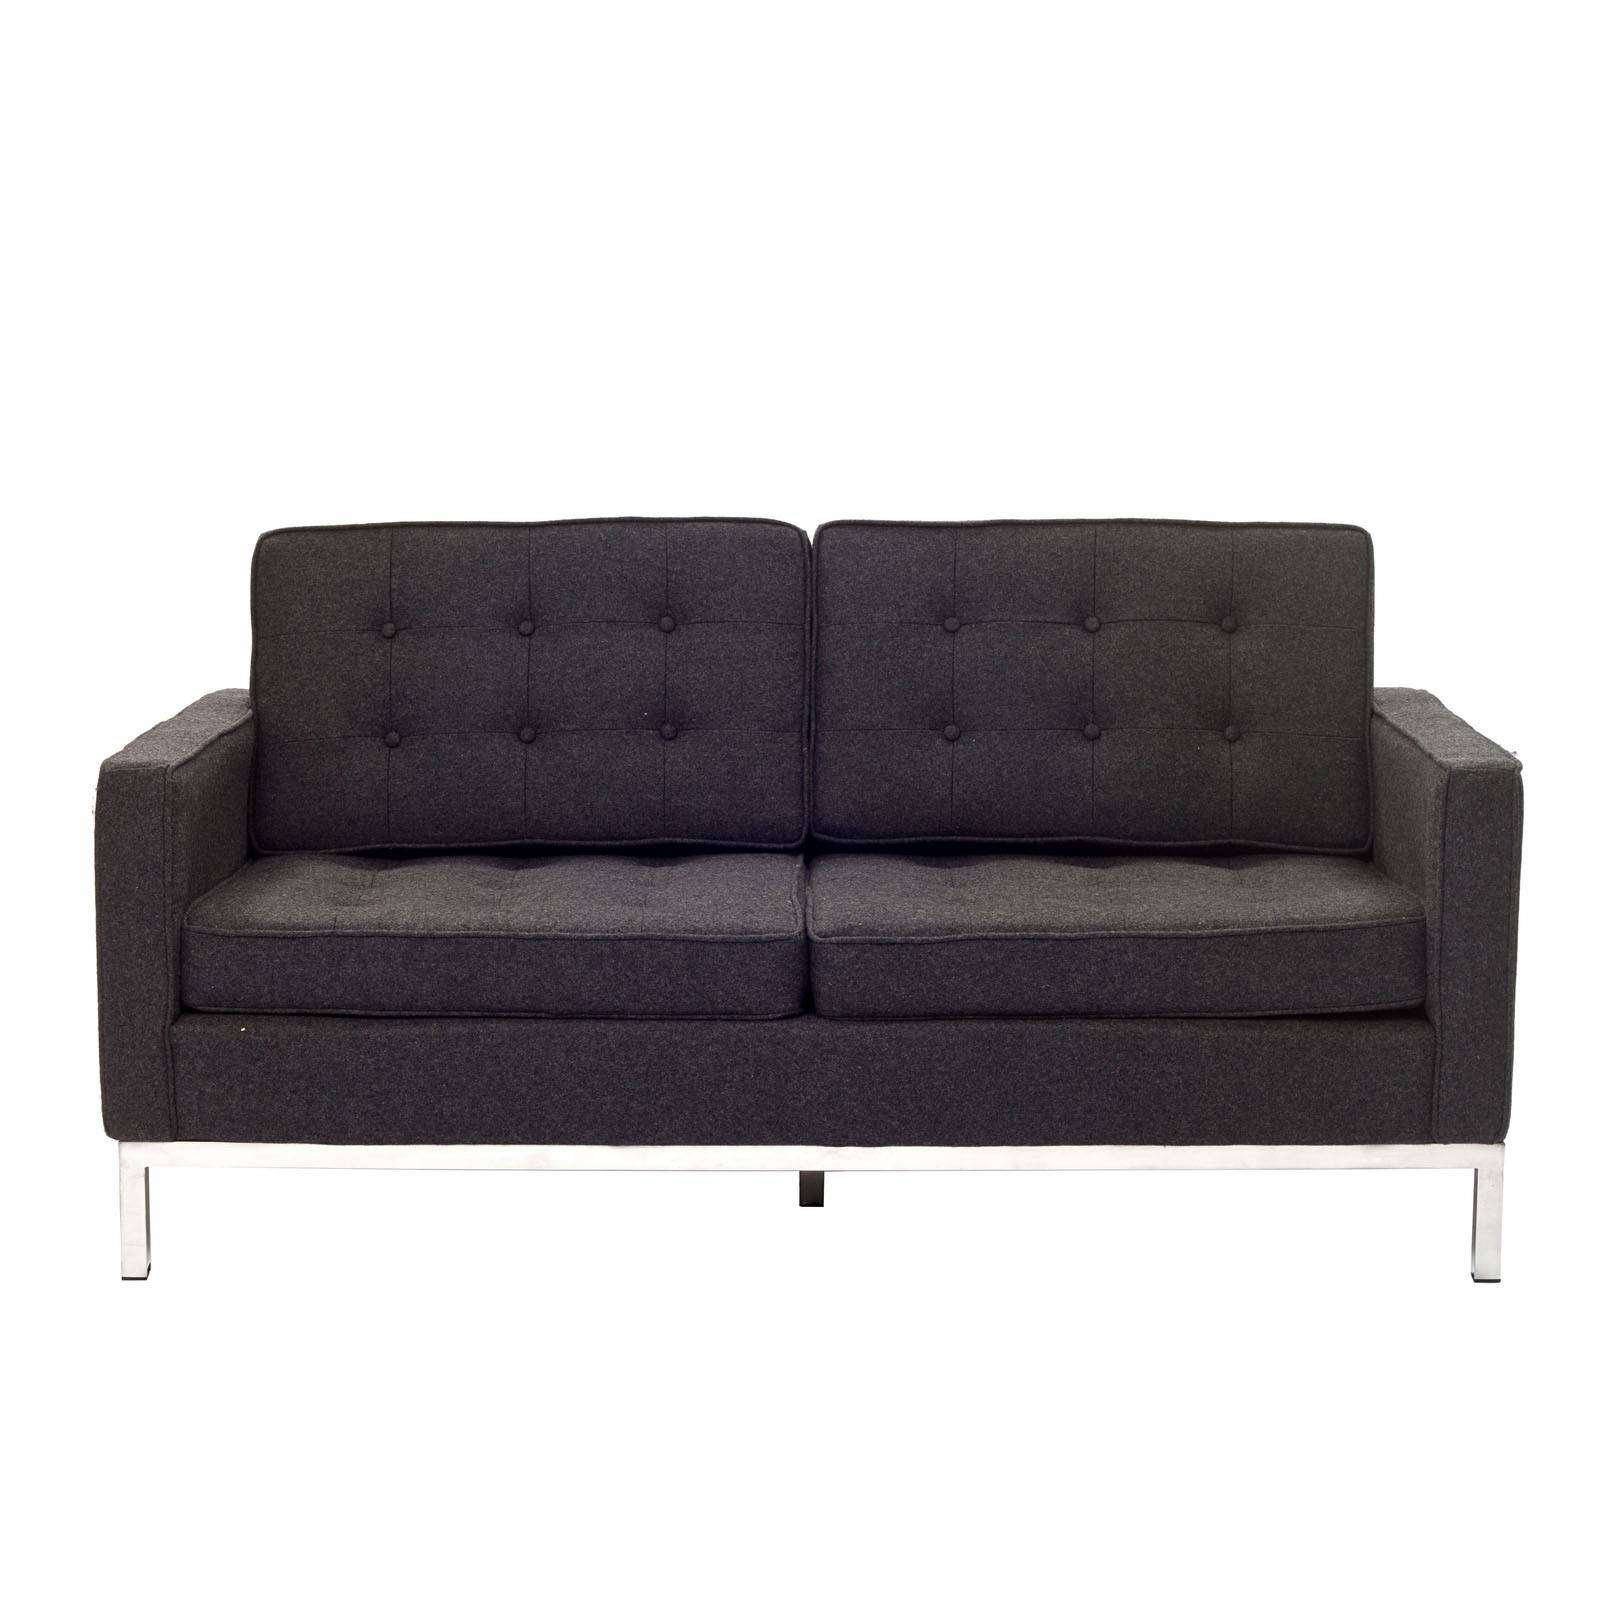 noguchi sofa reproduction sam ulhasnagar east maharashtra florence knoll style loveseat couch wool